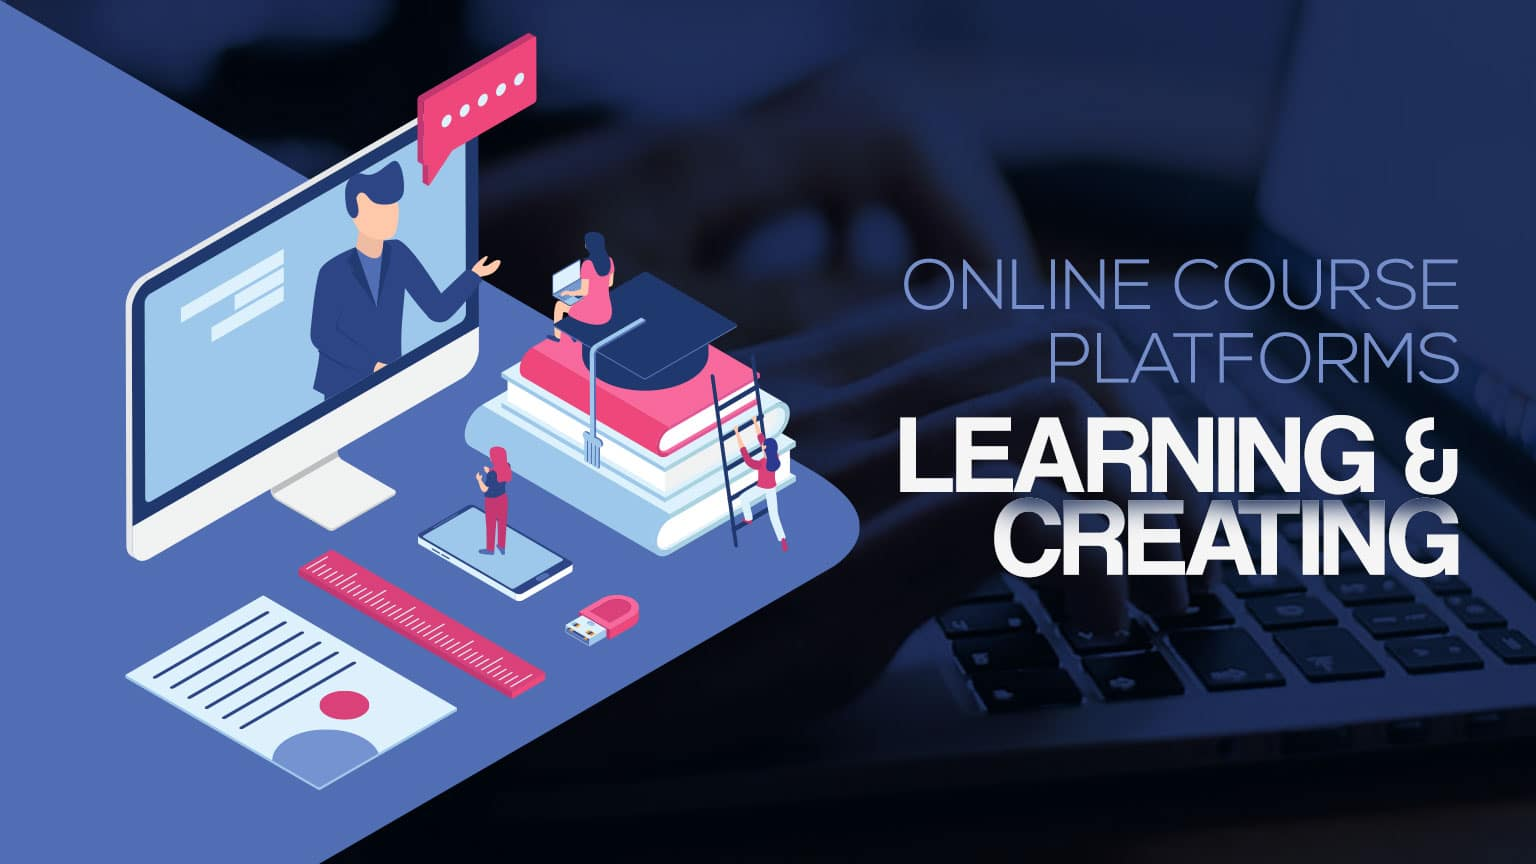 Learning an creating